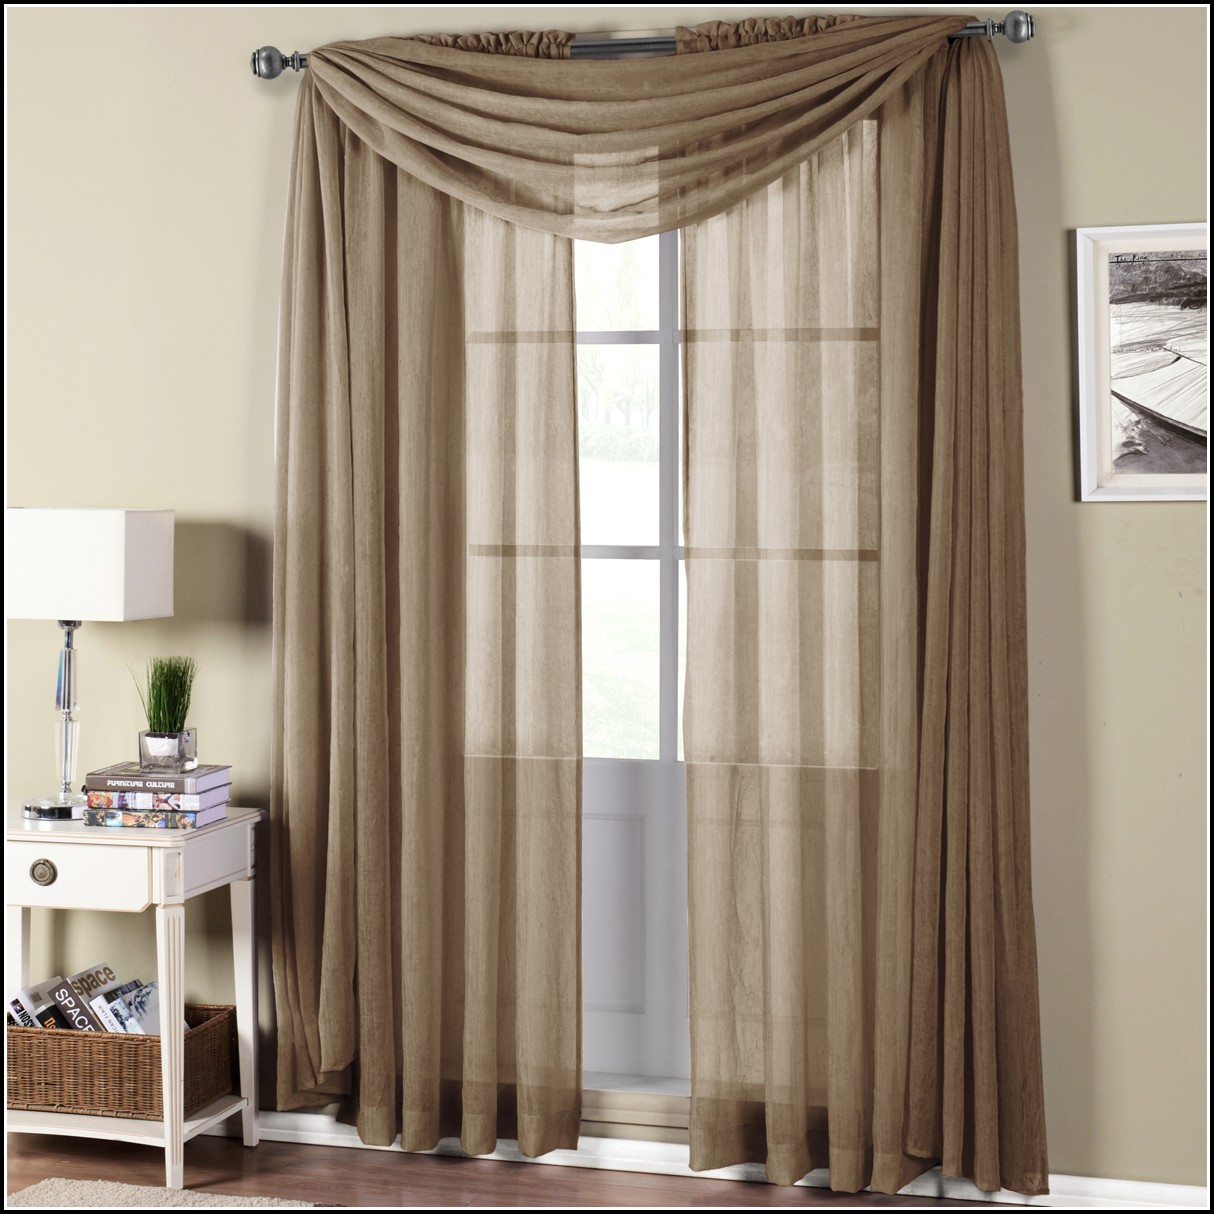 Side Wall Mount Curtain Rods Curtains Home Design